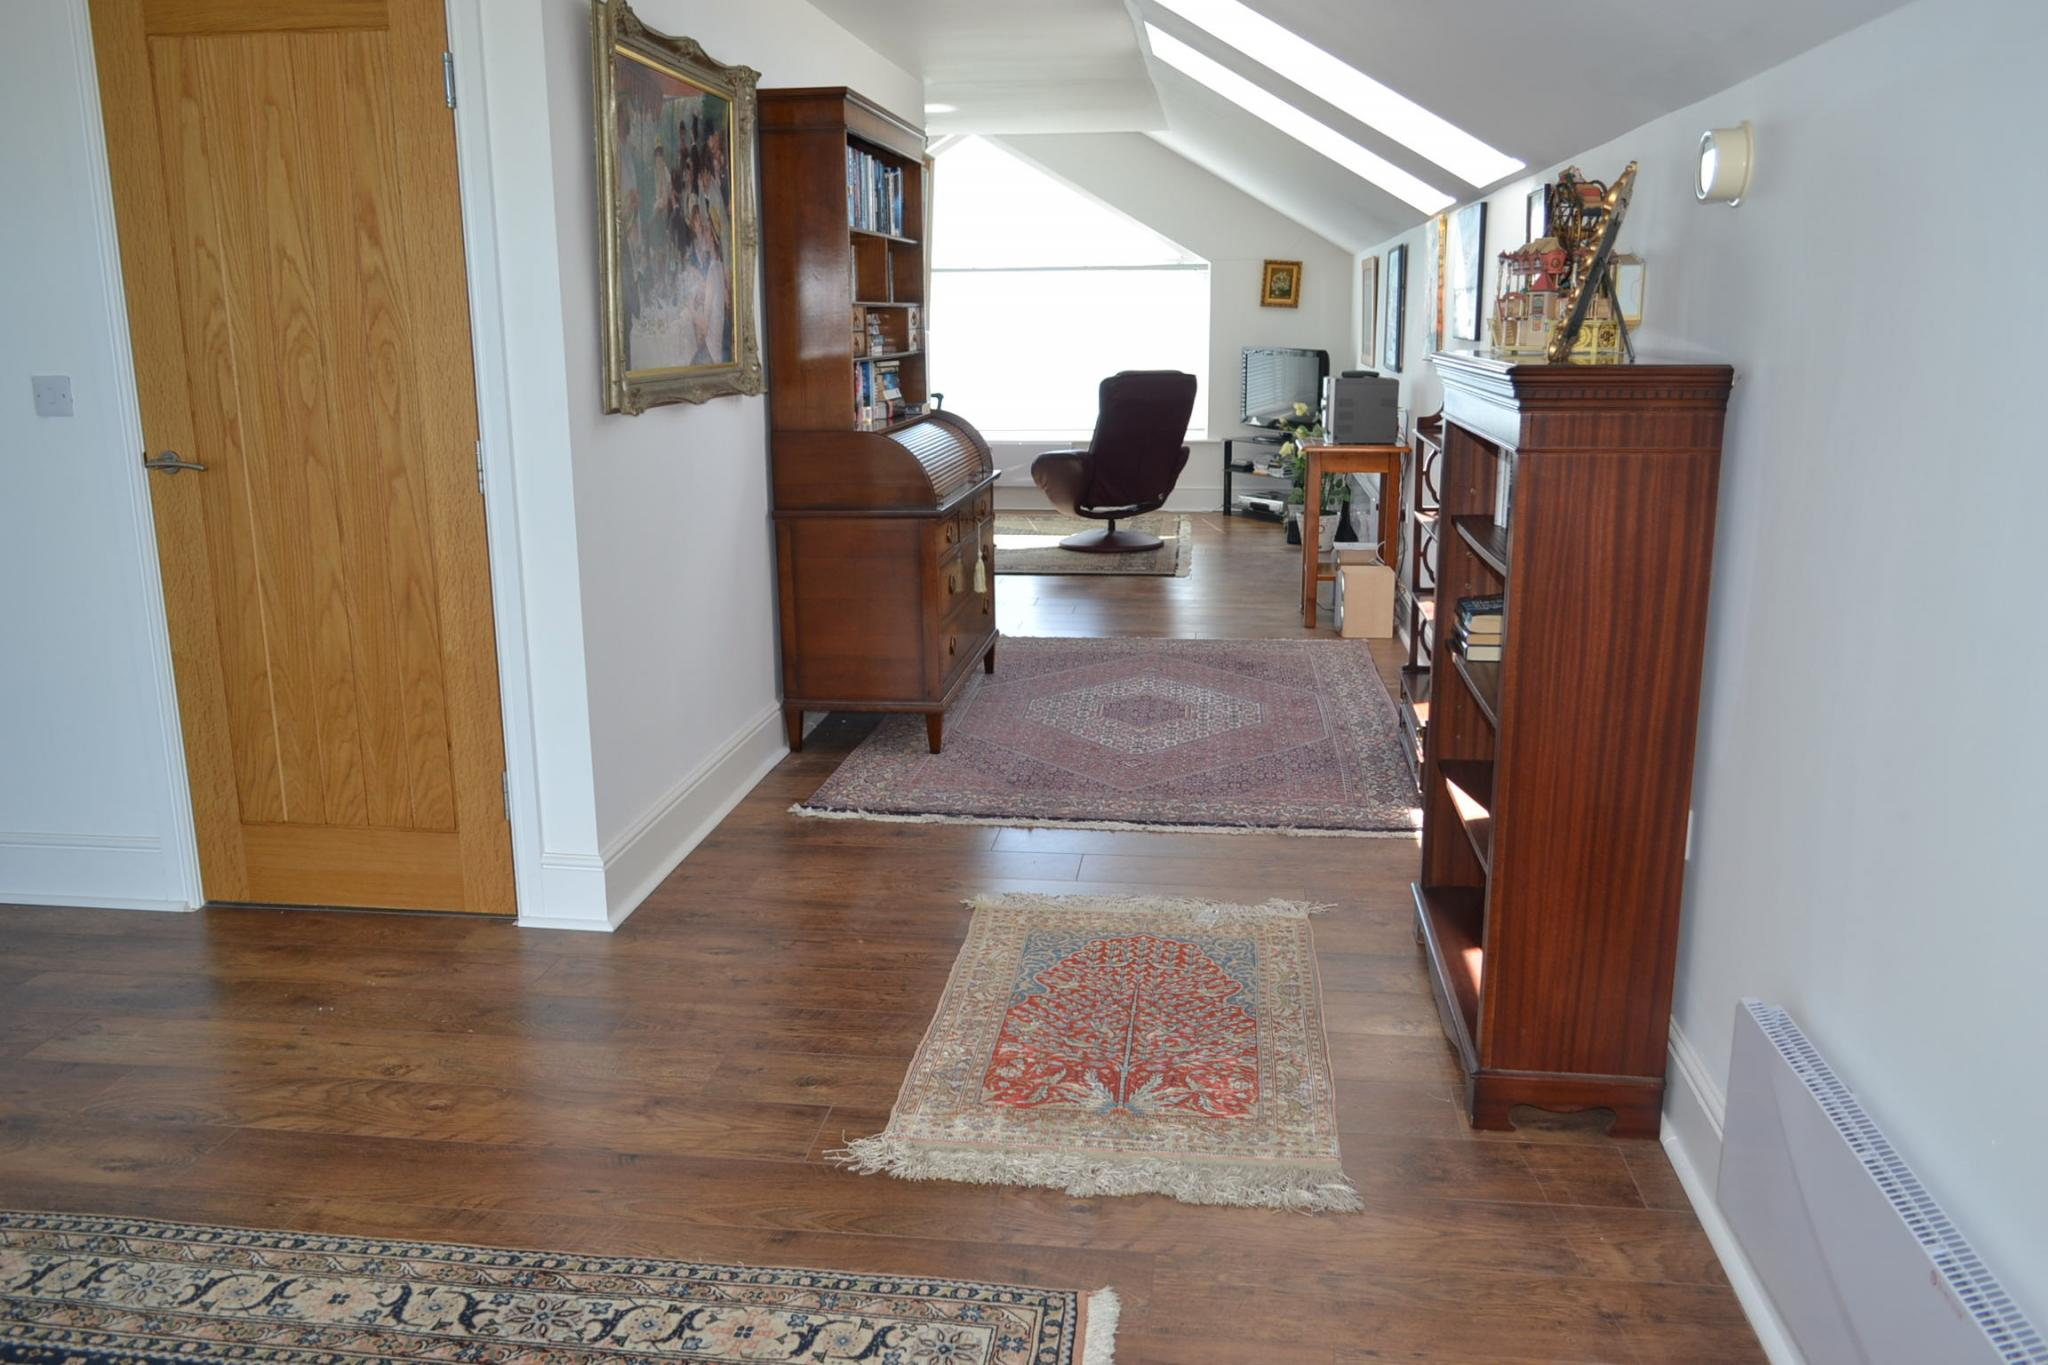 5 bedroom detached house For Sale in Port St Mary - Photograph 25